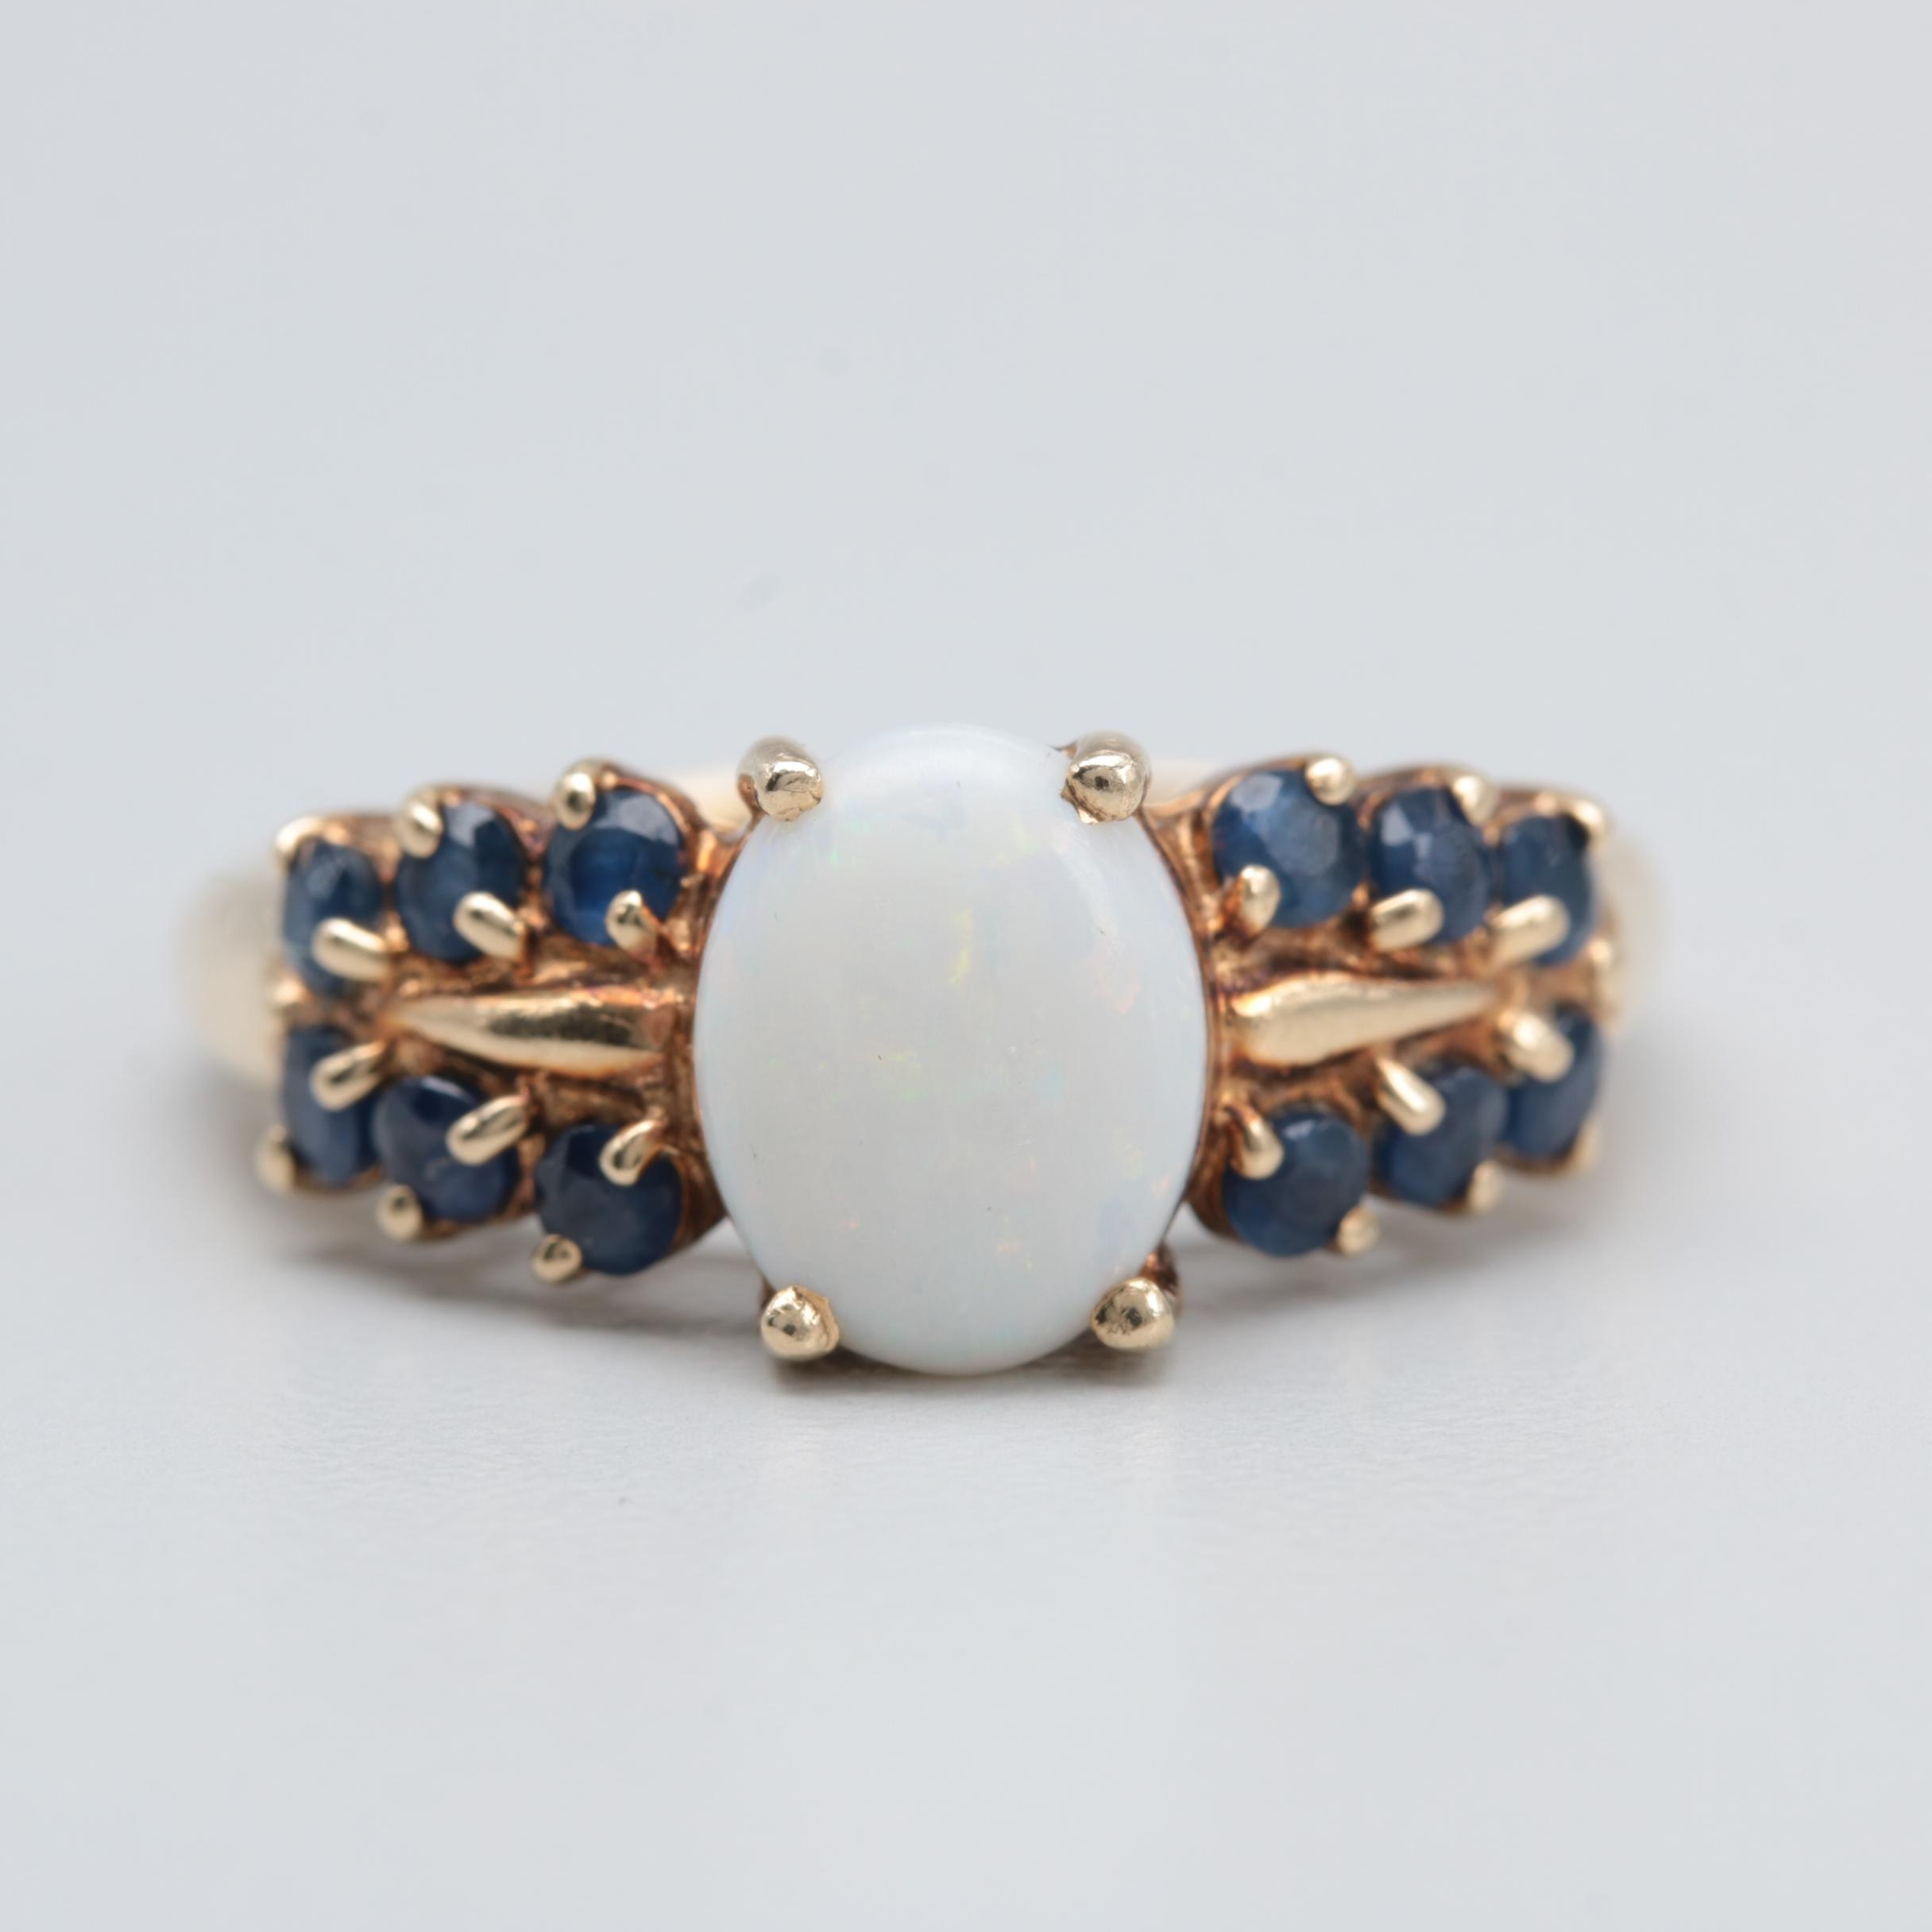 10K Yellow Gold Opal and Sapphire Ring